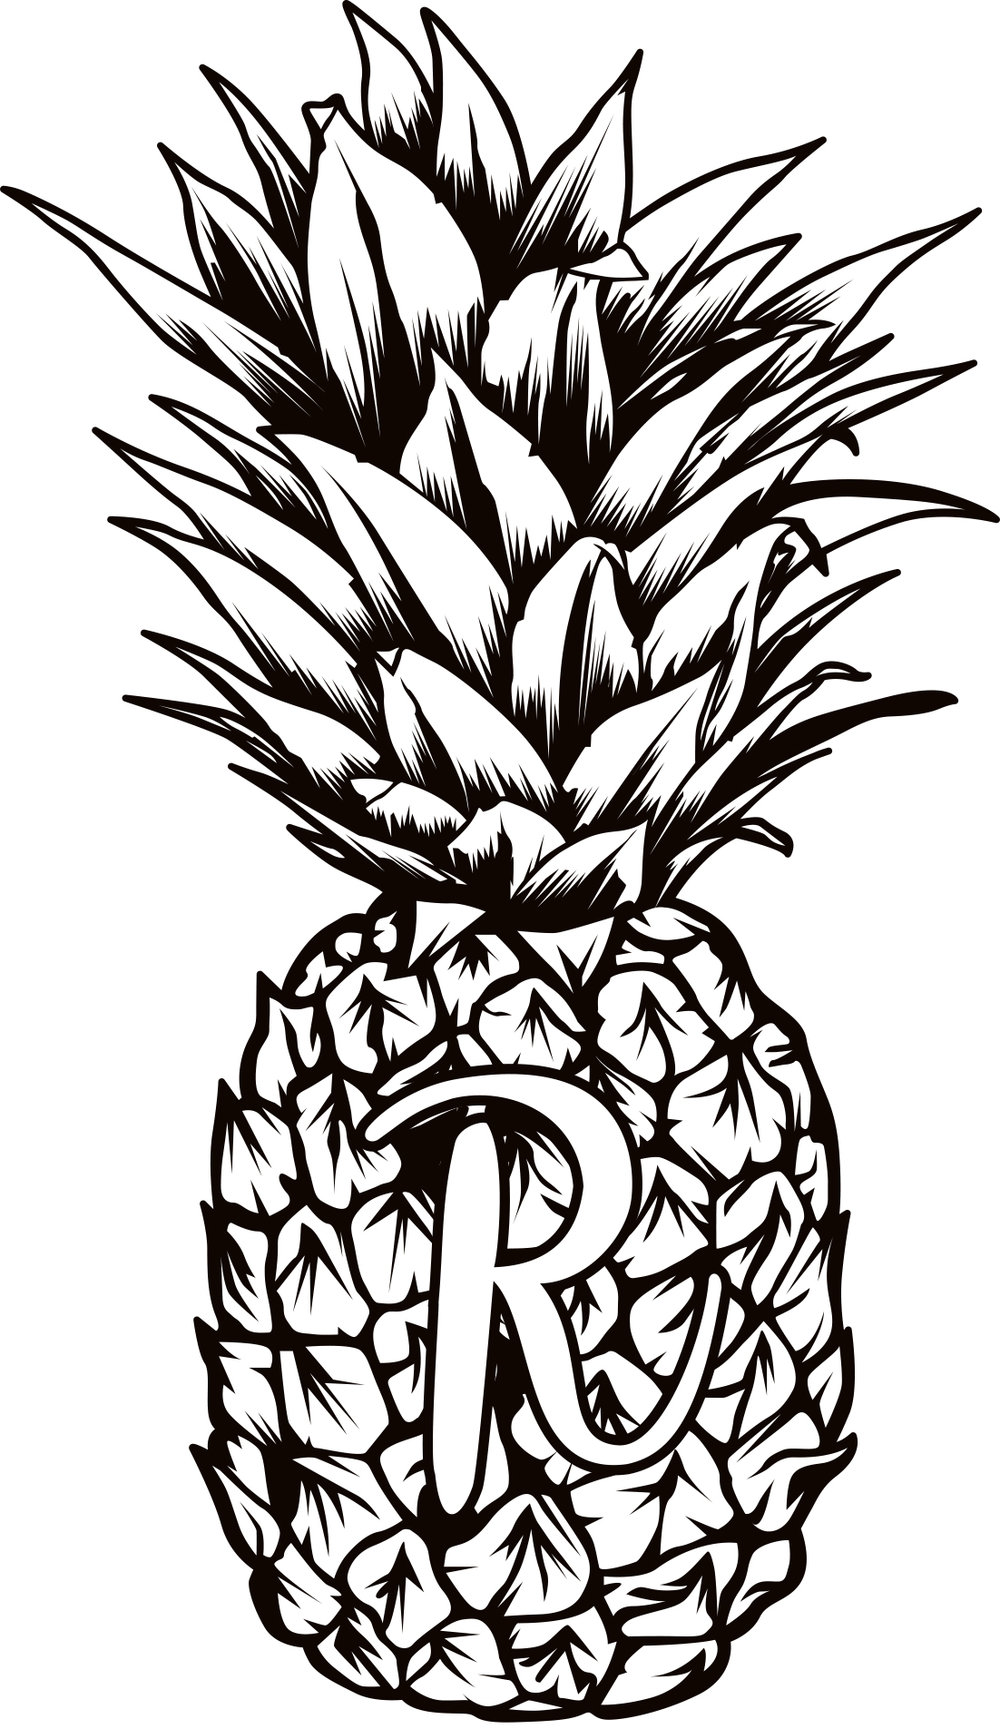 The Rustic Pineapple for Clipart Pineapple Black And White  300lyp